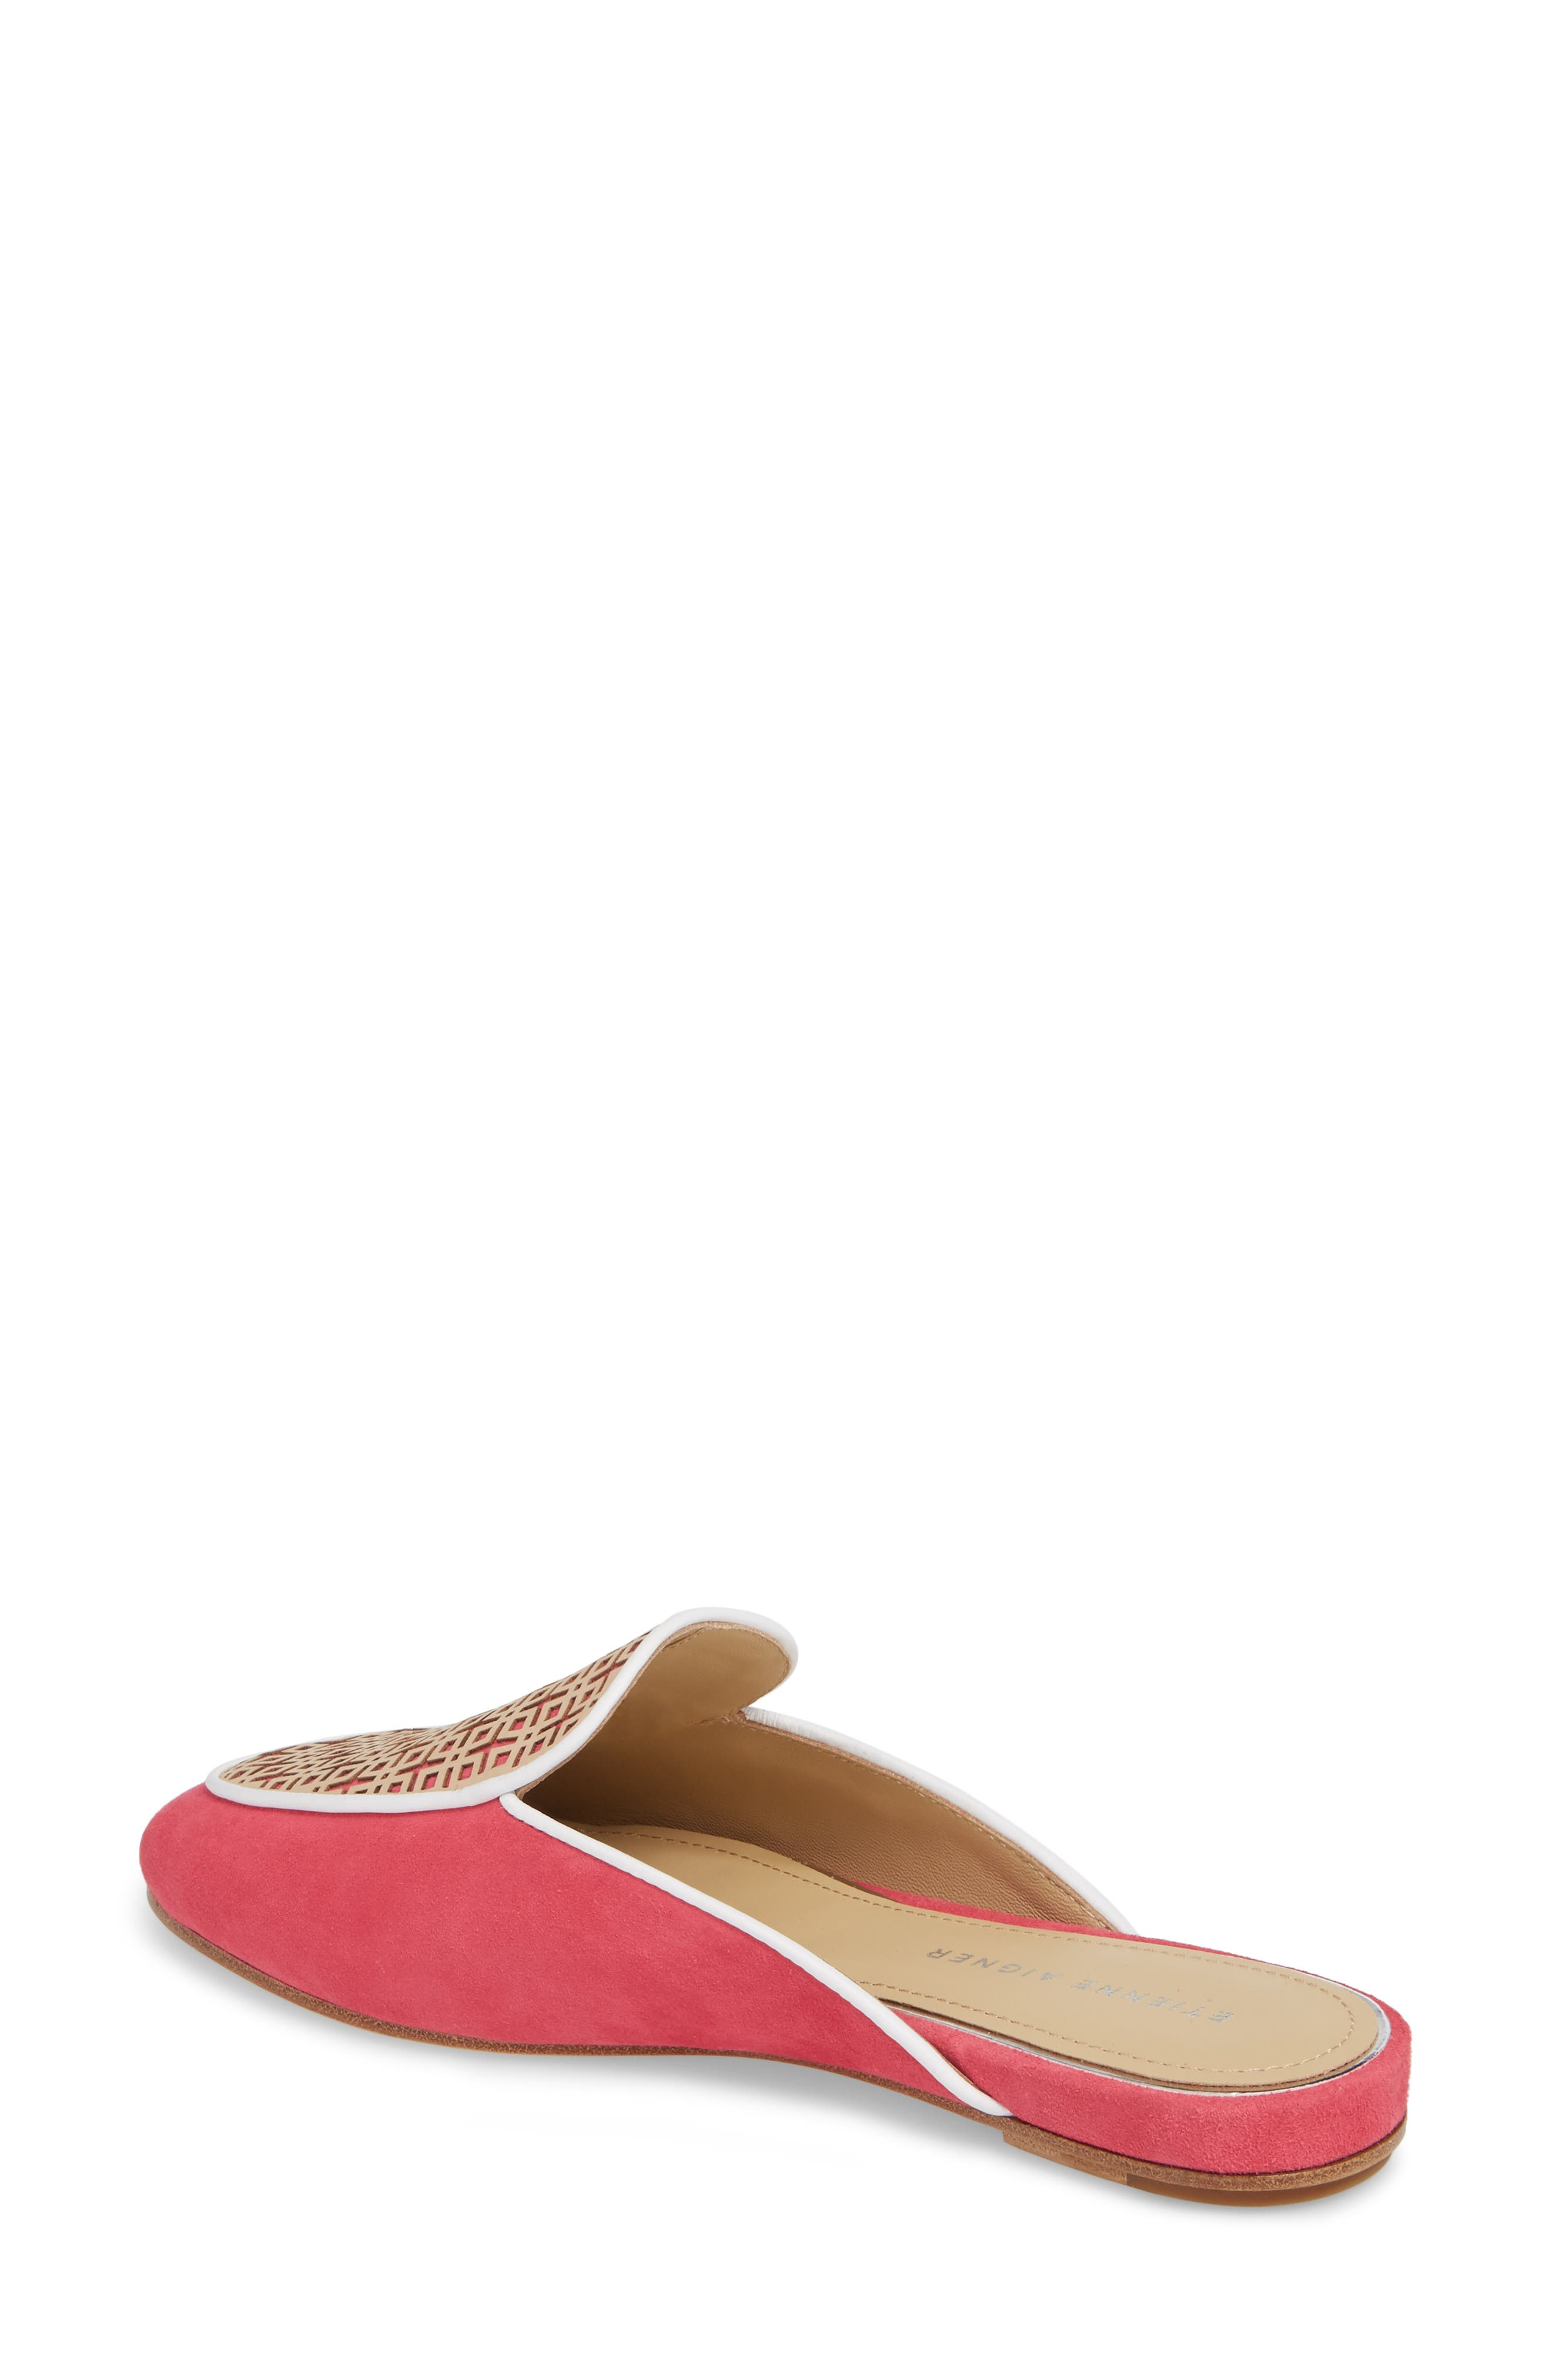 Caymen Mule,                             Alternate thumbnail 2, color,                             Natural/ Peony/ White